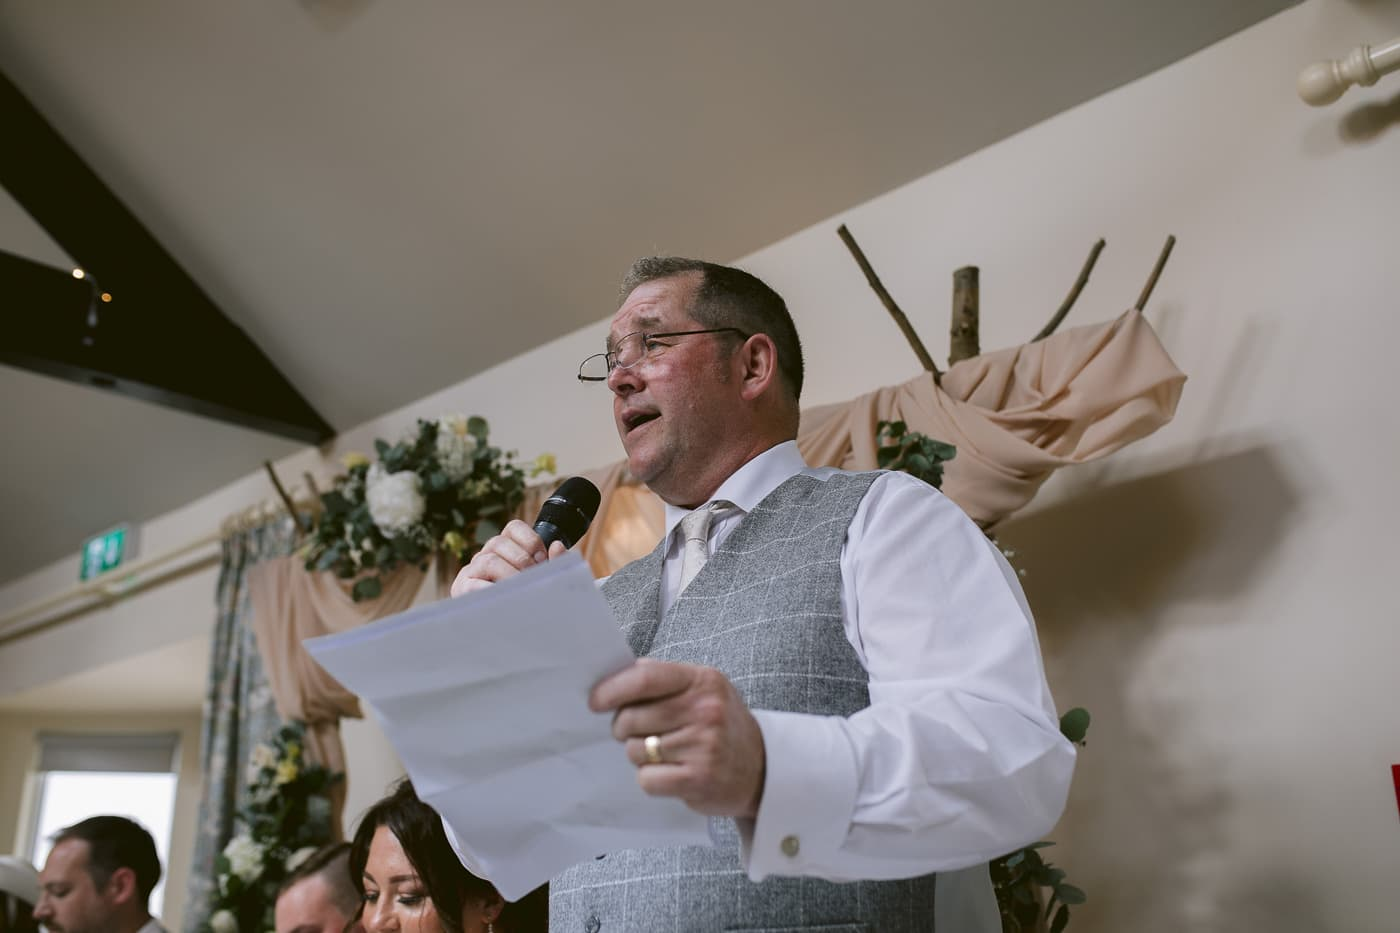 Man in Suit Giving Wedding Speech to the Guests Photography Portrait Shoot